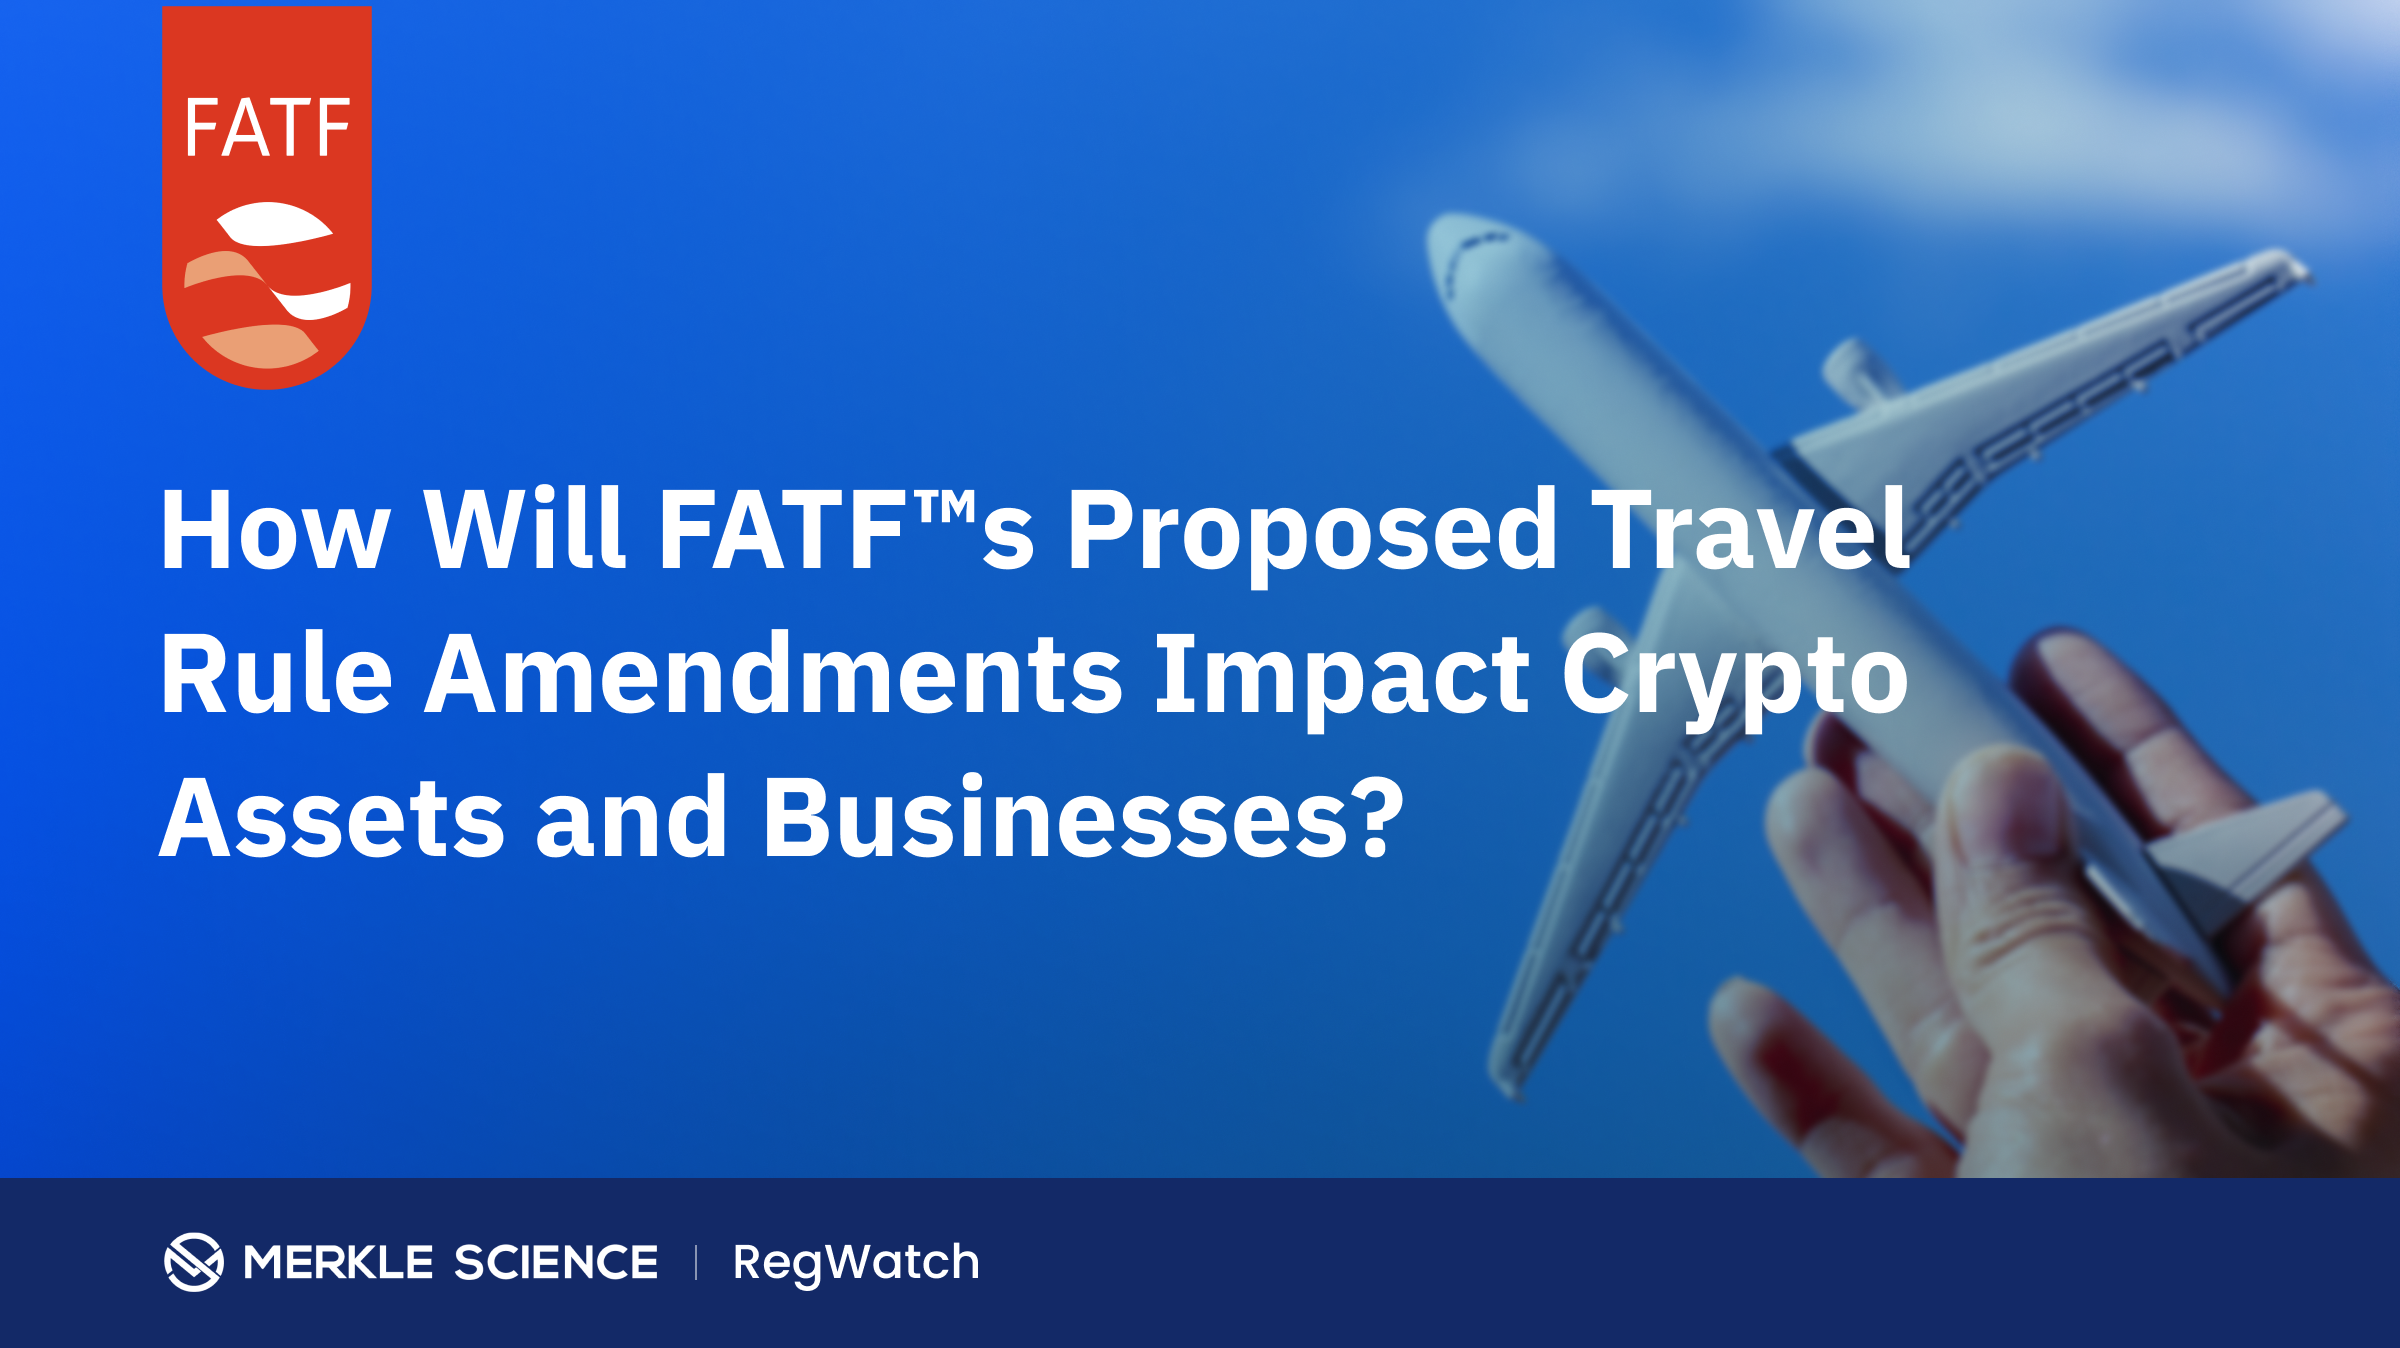 How Will FATF's Proposed Travel Rule Amendments Impact Crypto Assets and Businesses?